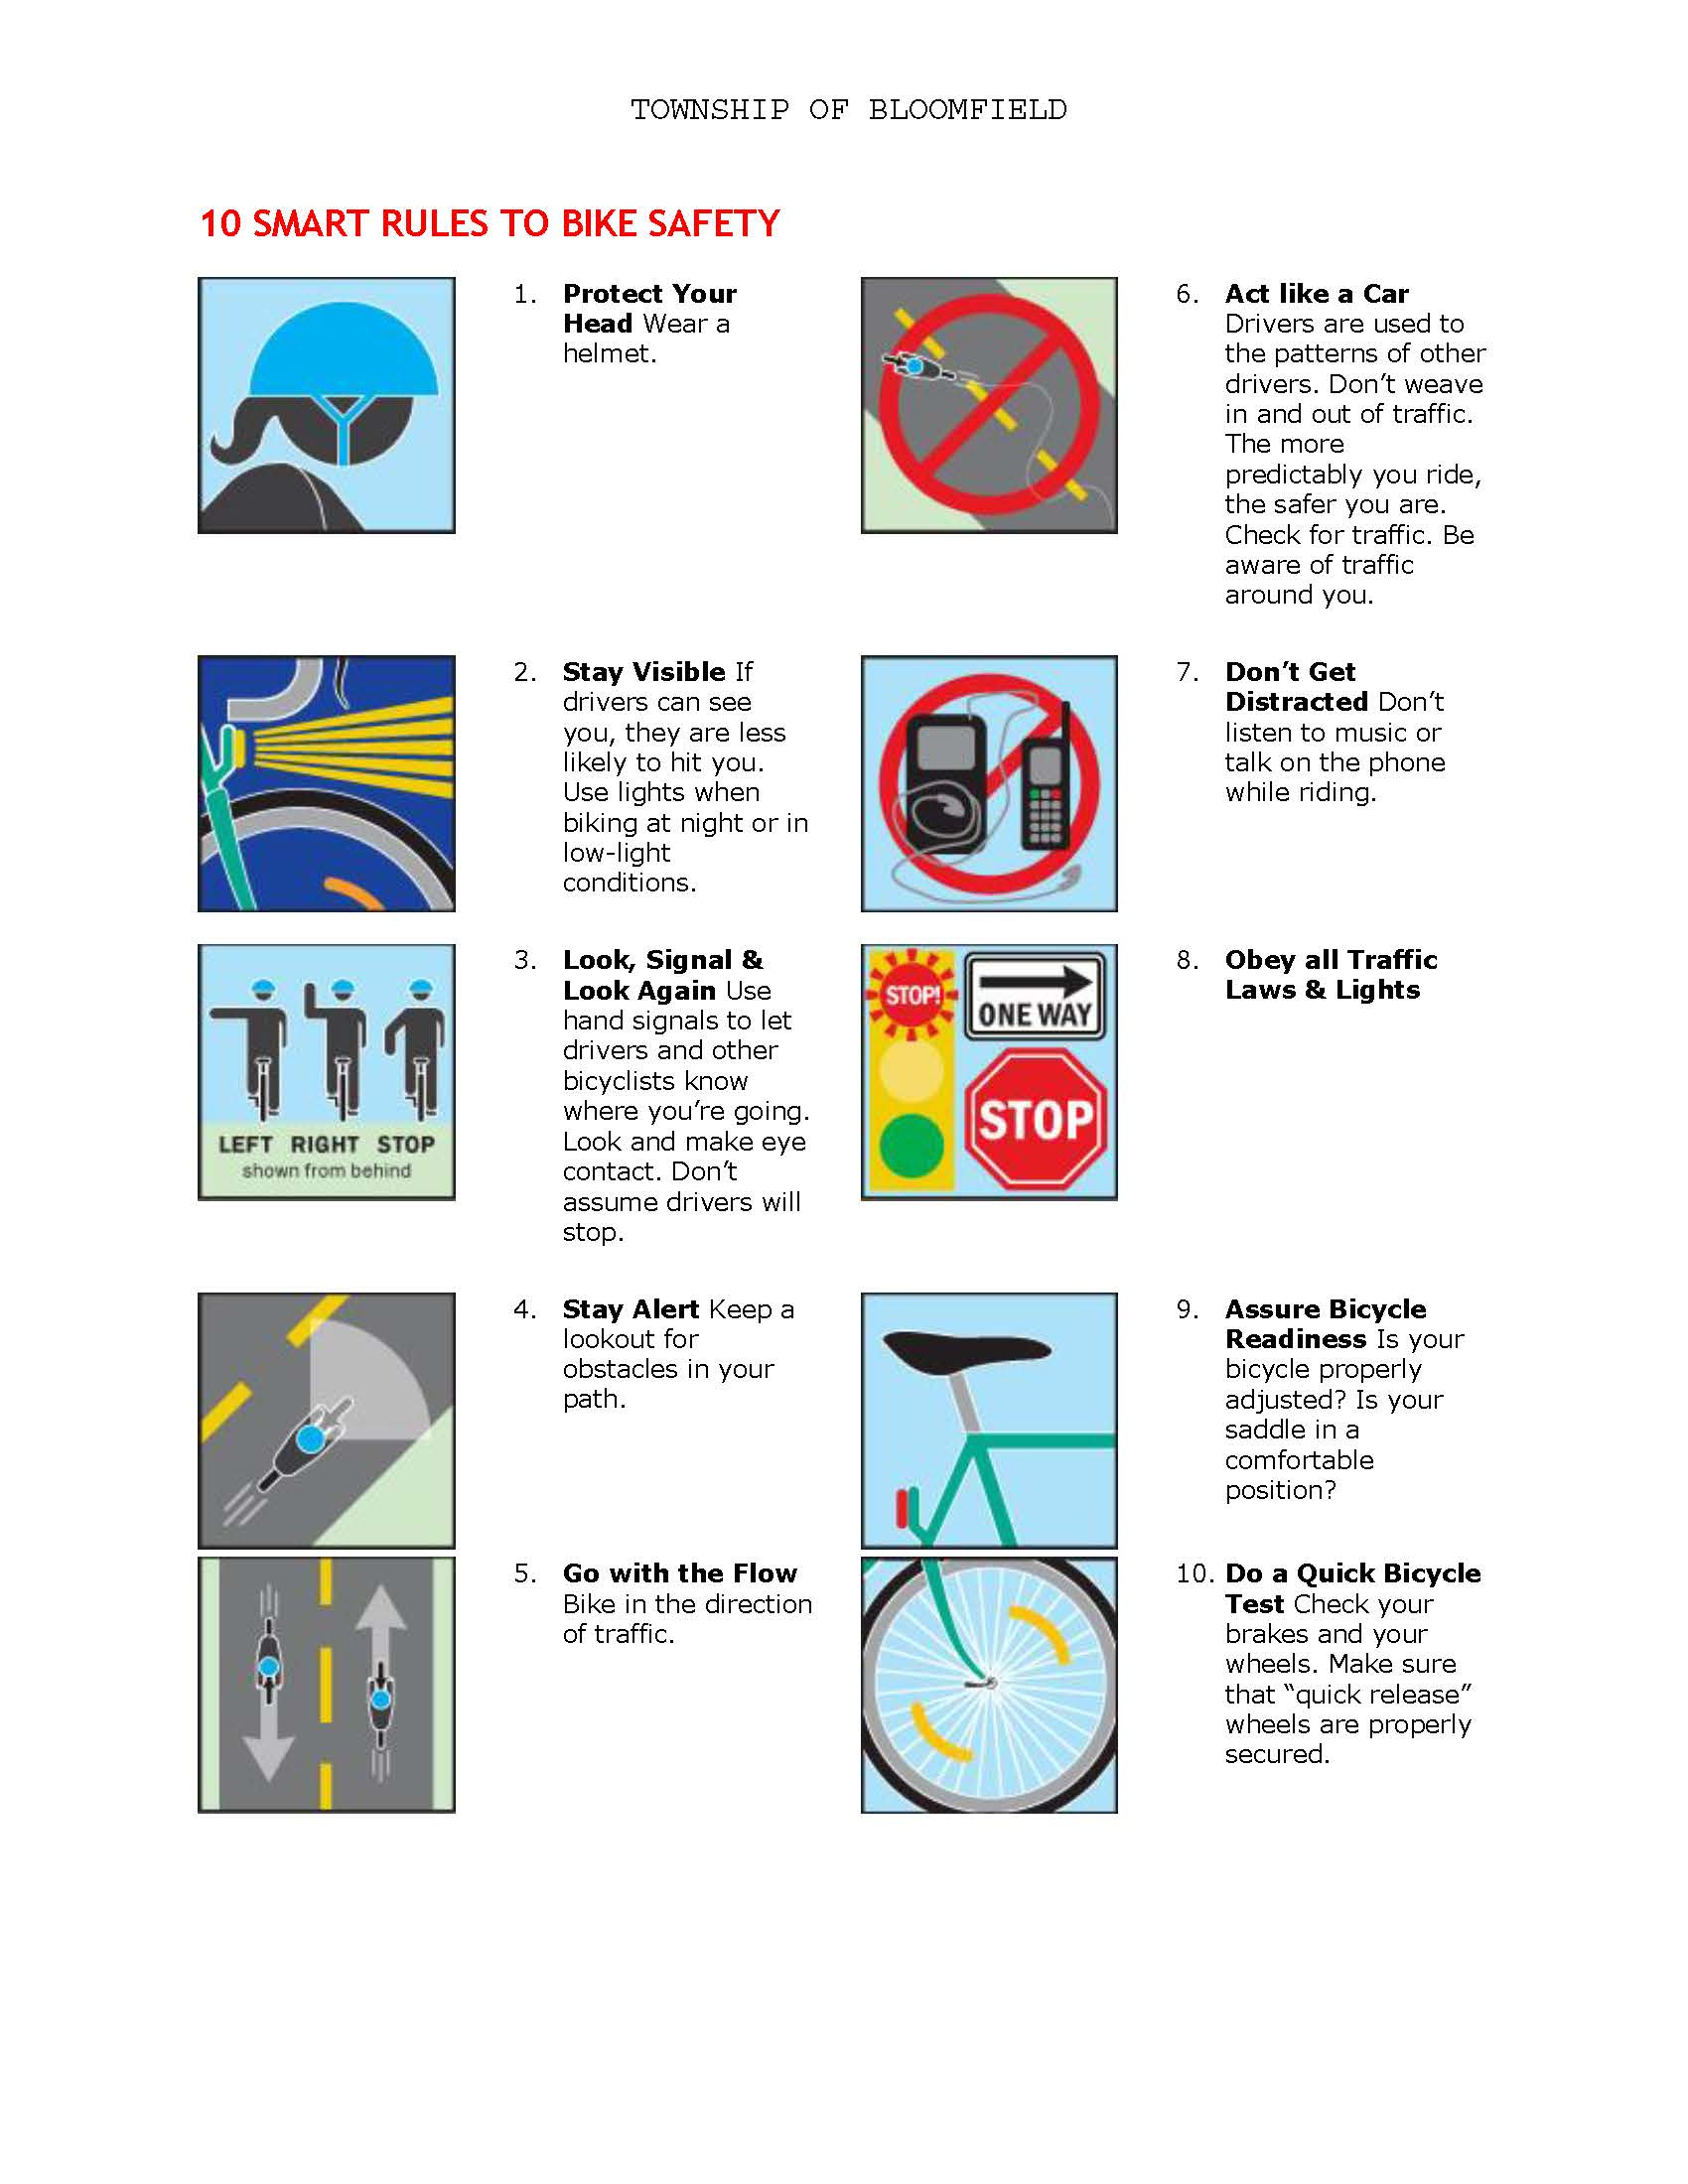 10 Smart Rules to Bike Safety